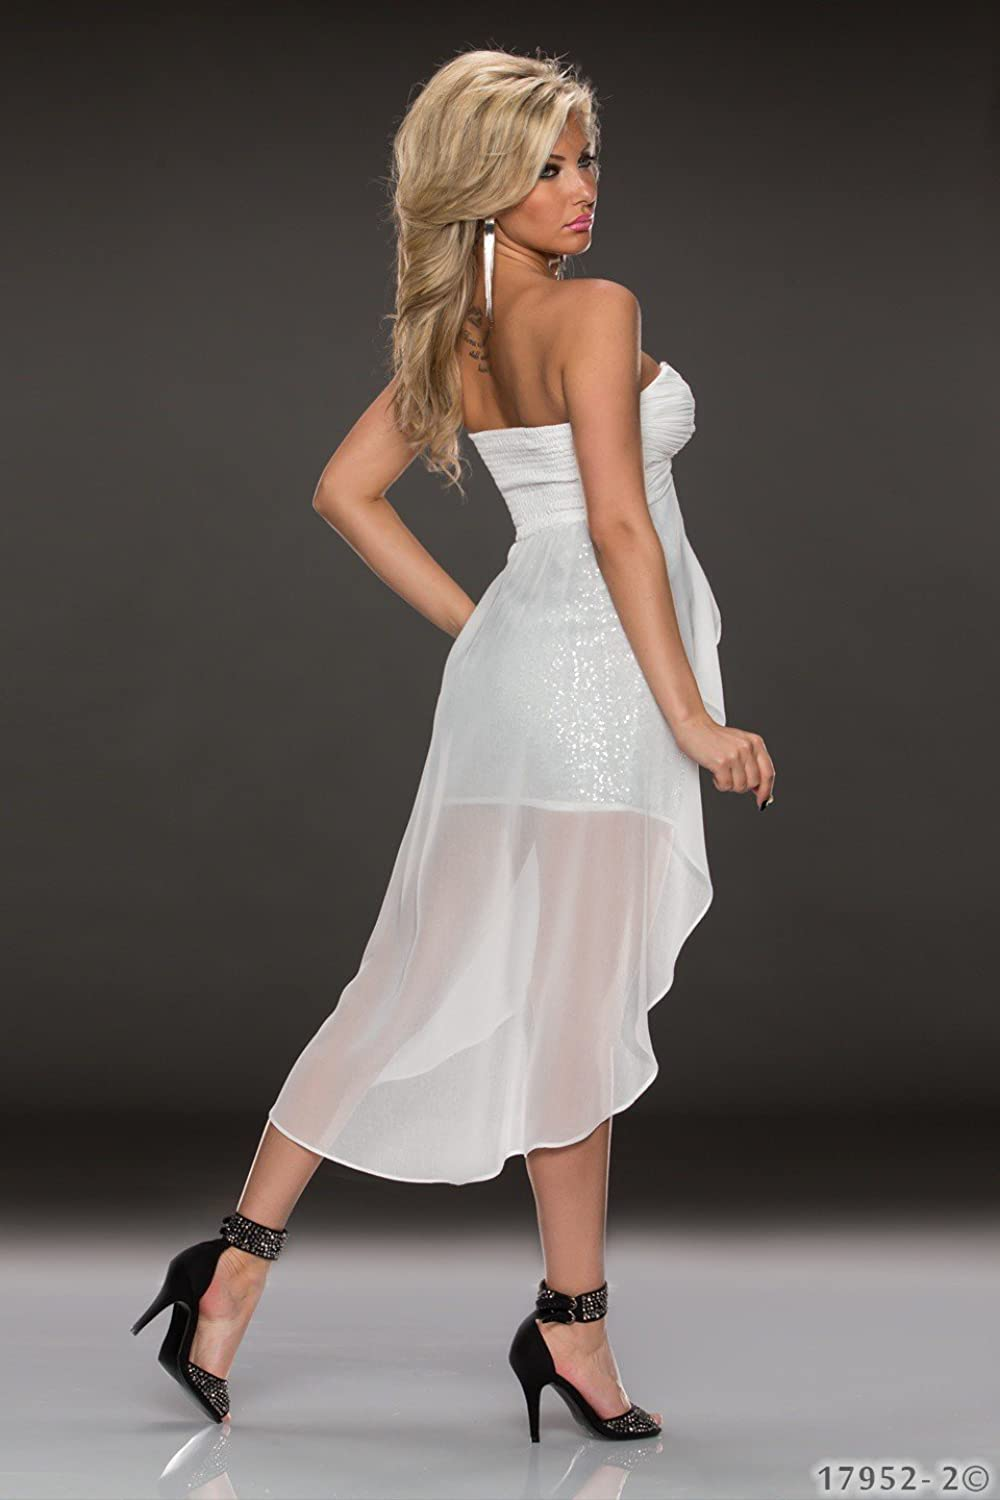 5979 FASHION4Young Vokuhila-Dress Ladies Evening Party dress Available in 3 Different Sizes / 5 Colours